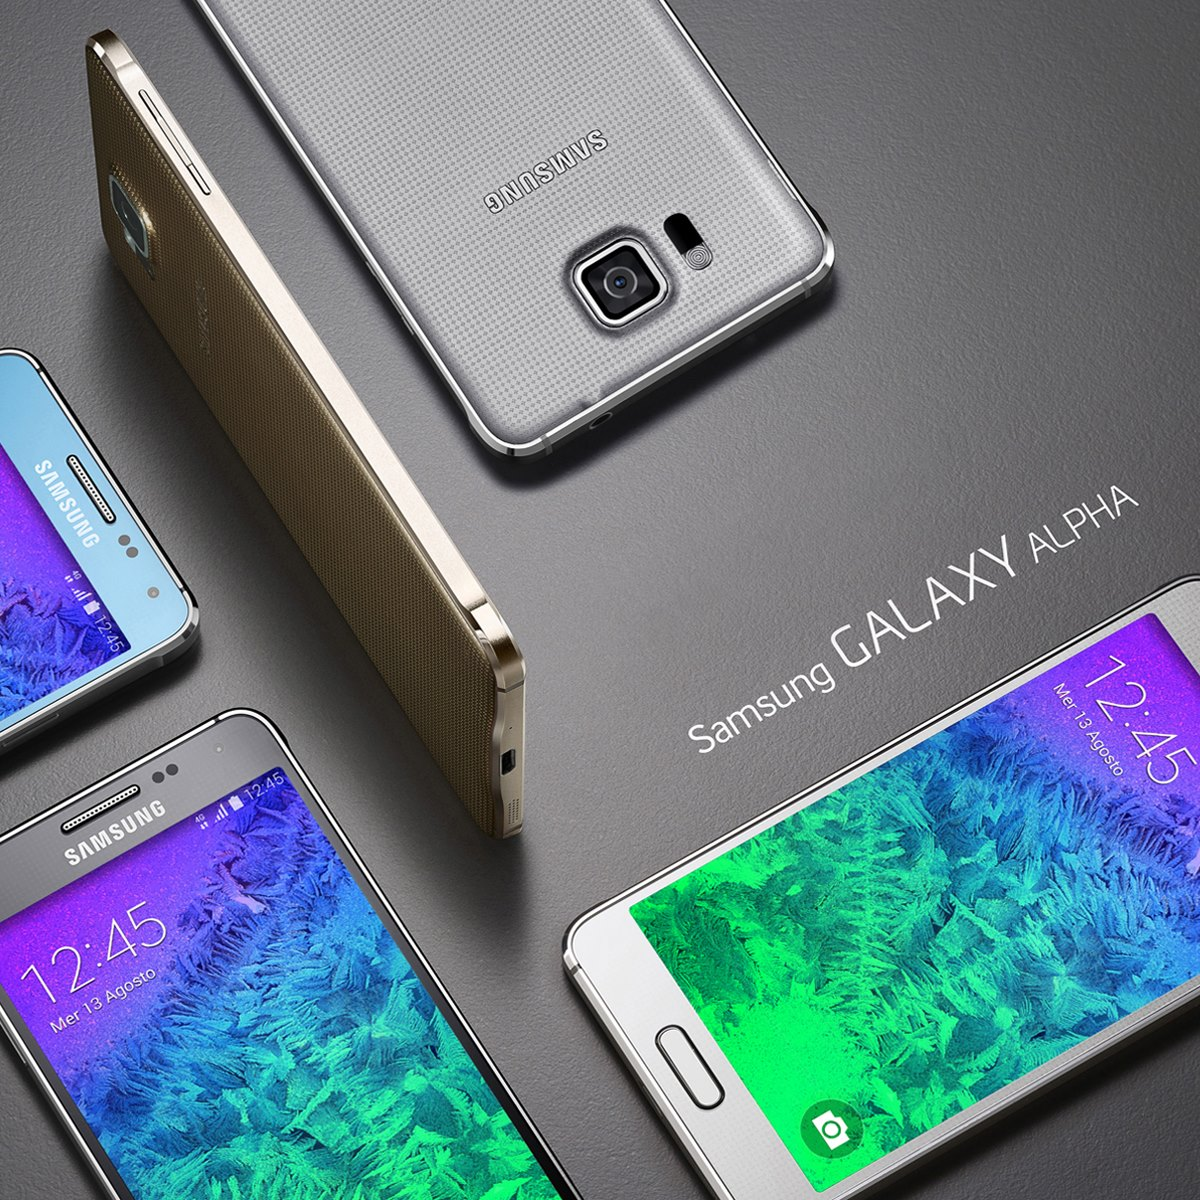 Samsung Galaxy Alpha final